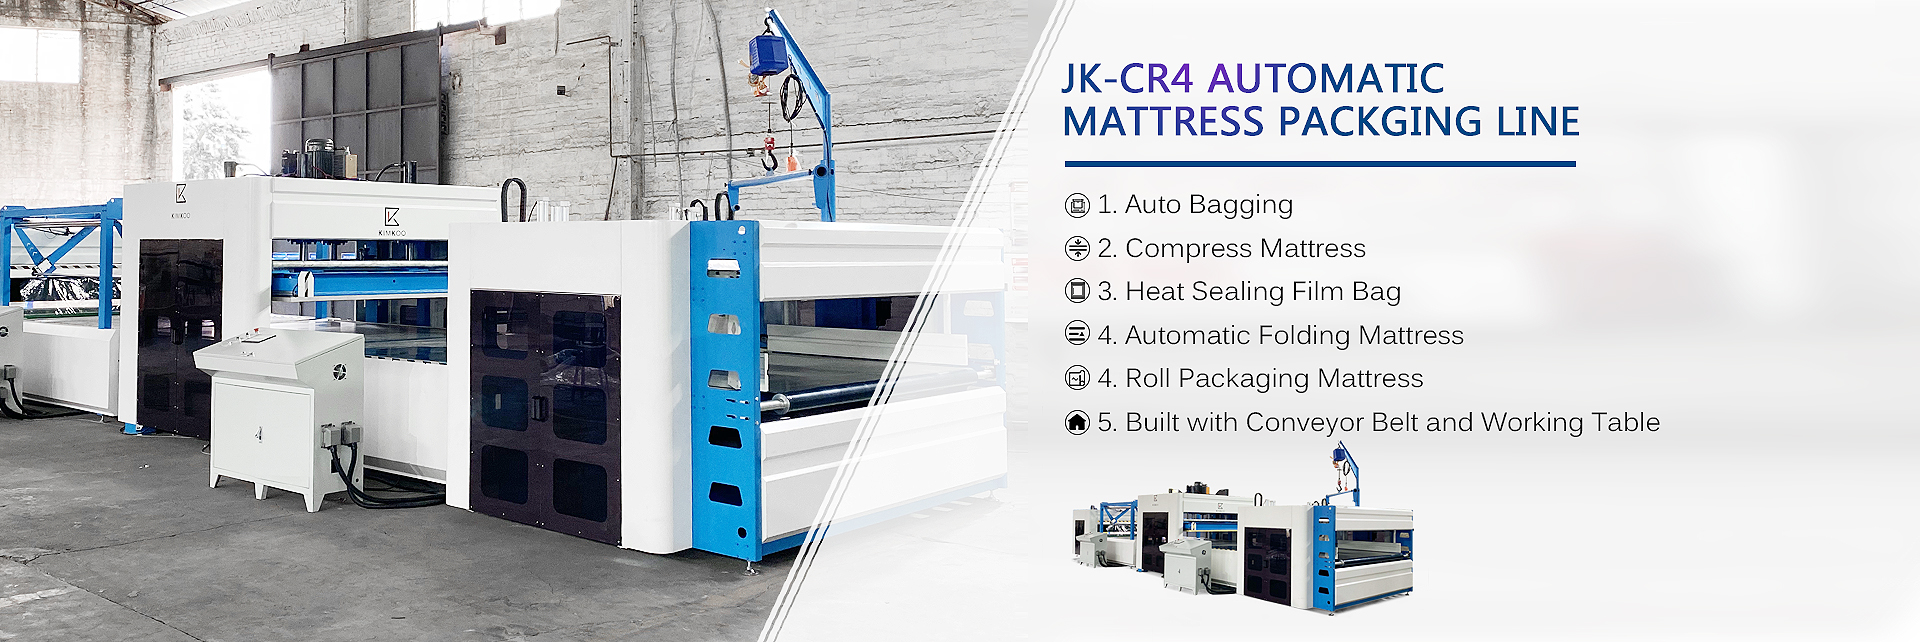 Automatic Mattress Packaging Line